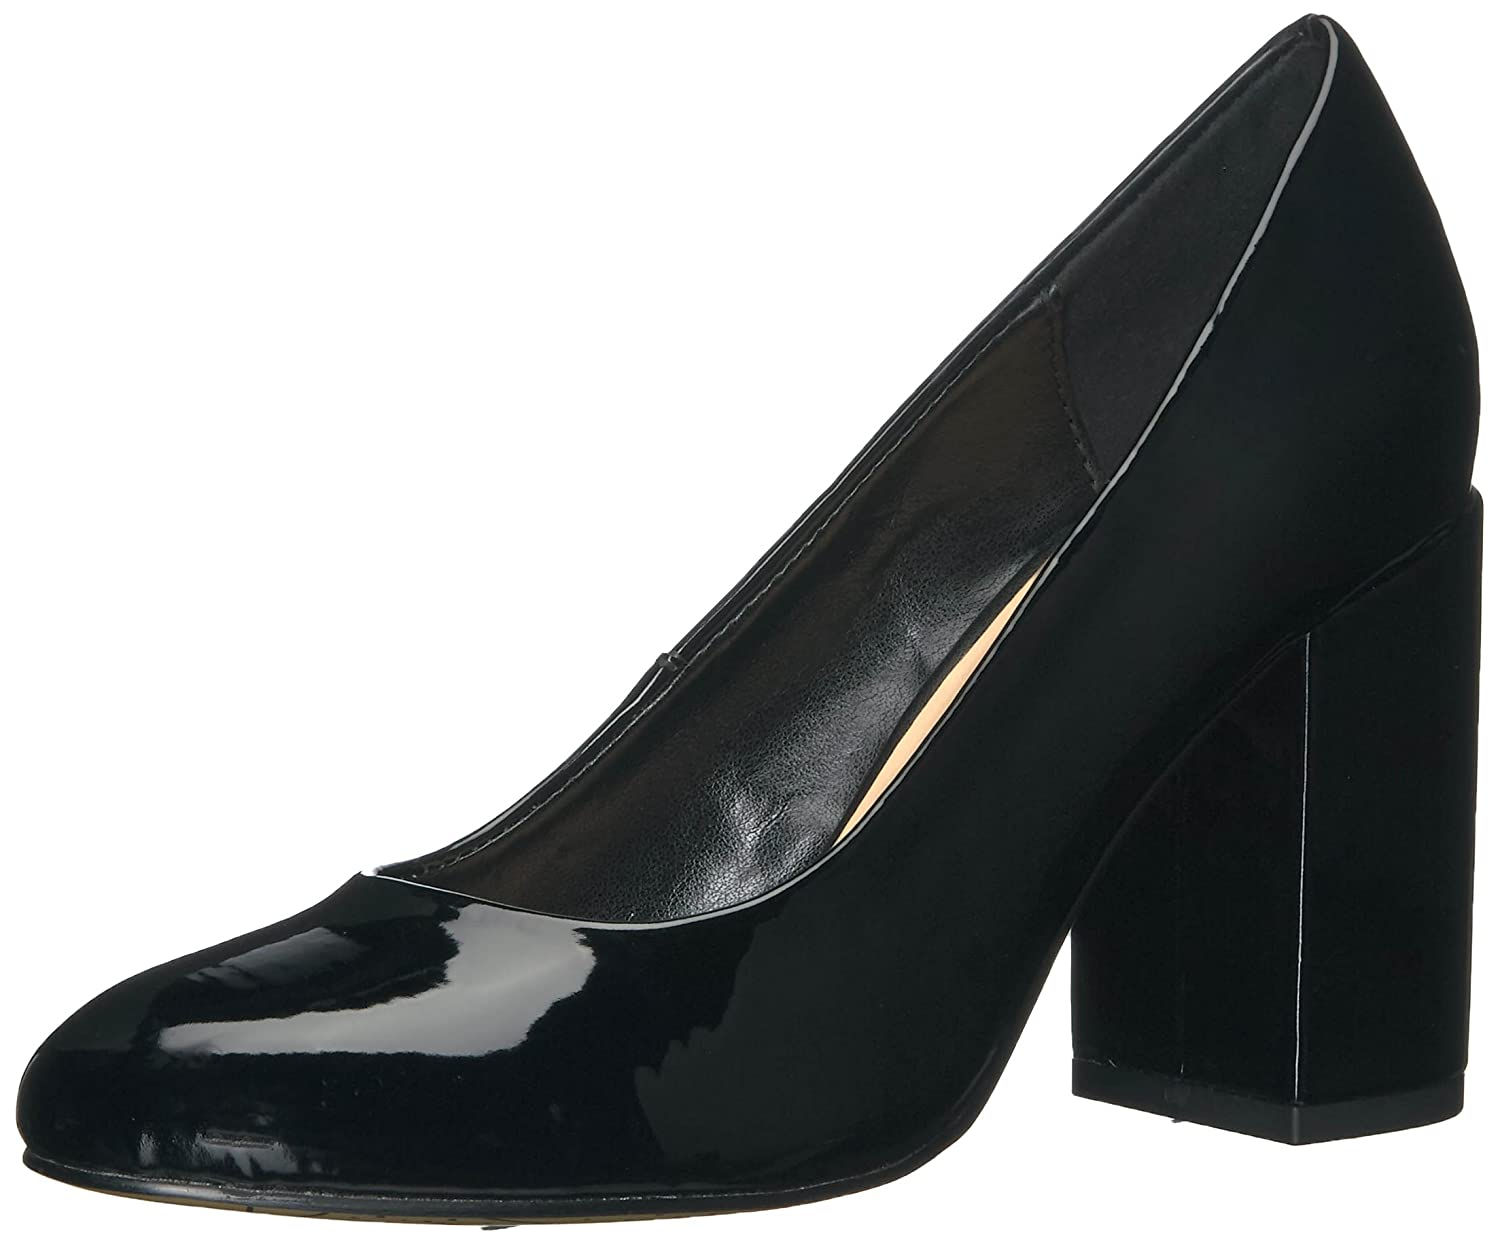 Bella Vita Women's Nara Ii Dress Pump B01N1VD778 8 2W US|Black Patent